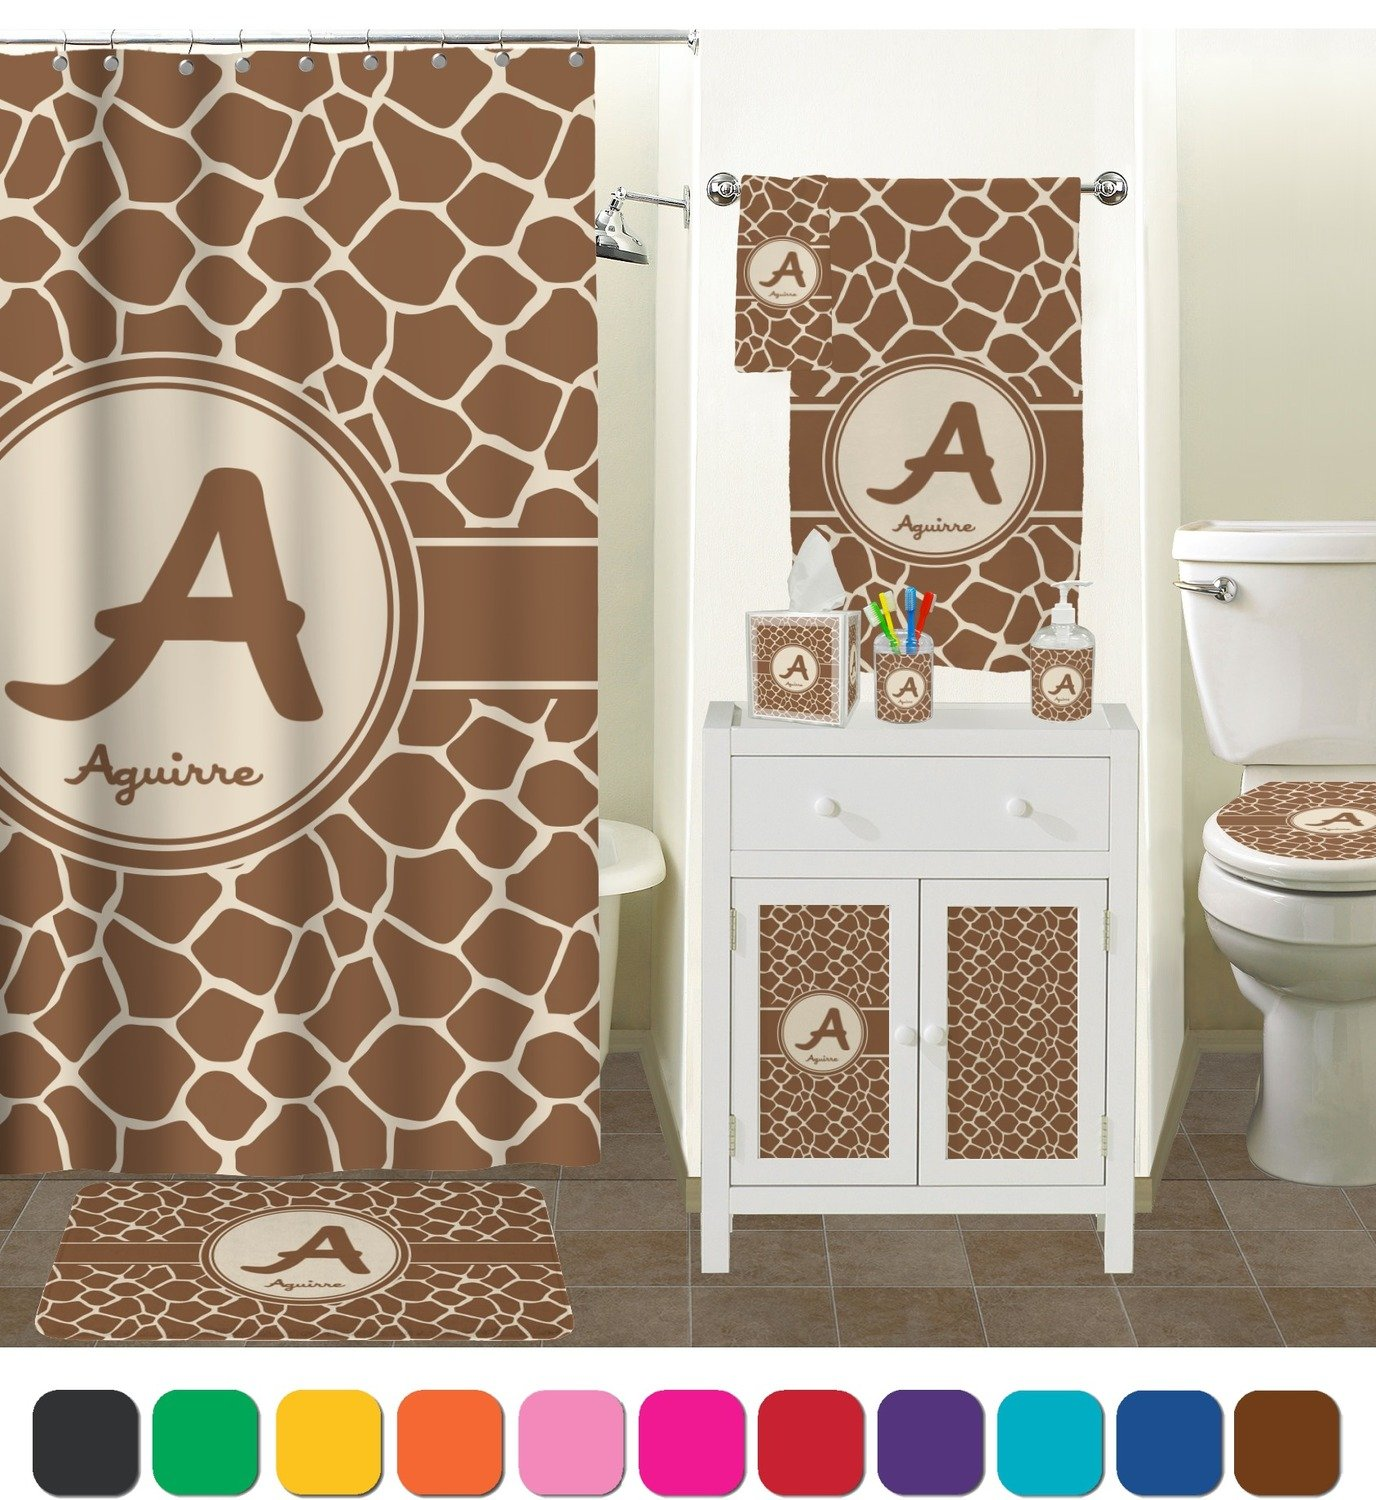 Attirant Amazon.com: Giraffe Print Bathroom Accessories Set (Ceramic)  (Personalized): Home U0026 Kitchen